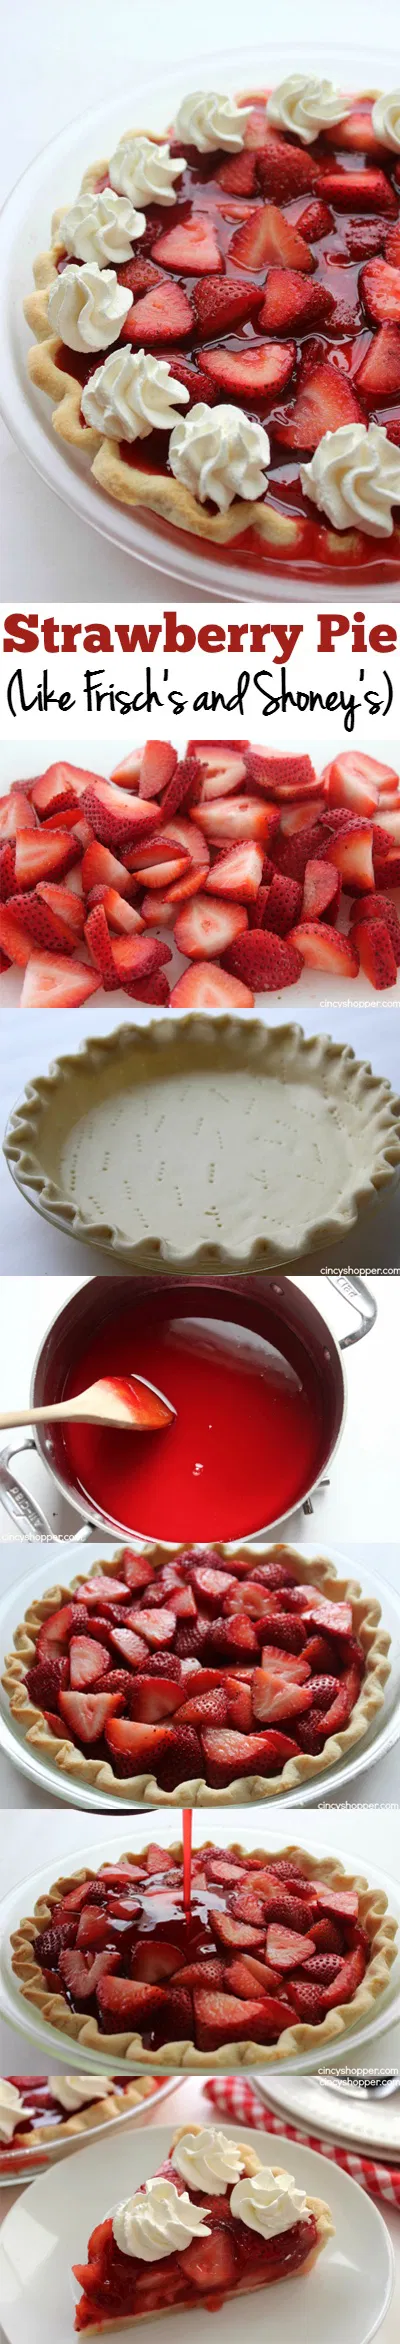 Easy Strawberry Pie like Frisch's and Shoney's!